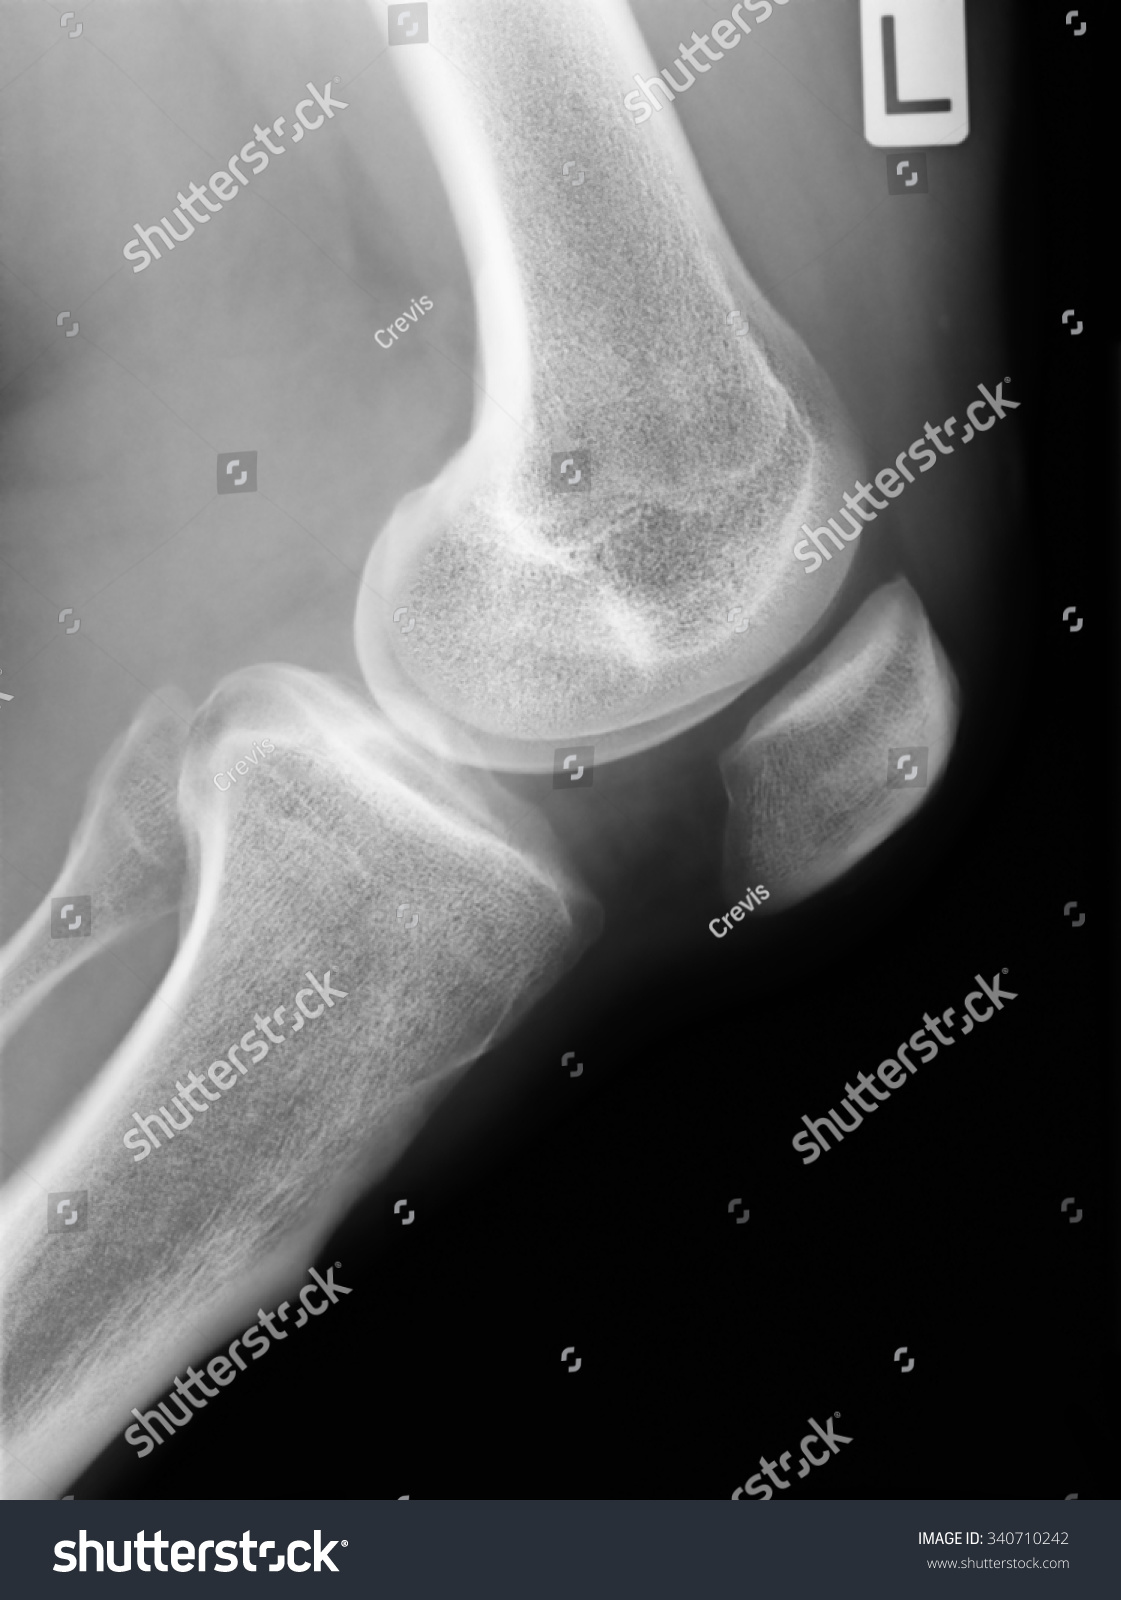 Human Knee Anatomy Xray Stock Illustration 340710242 - Shutterstock